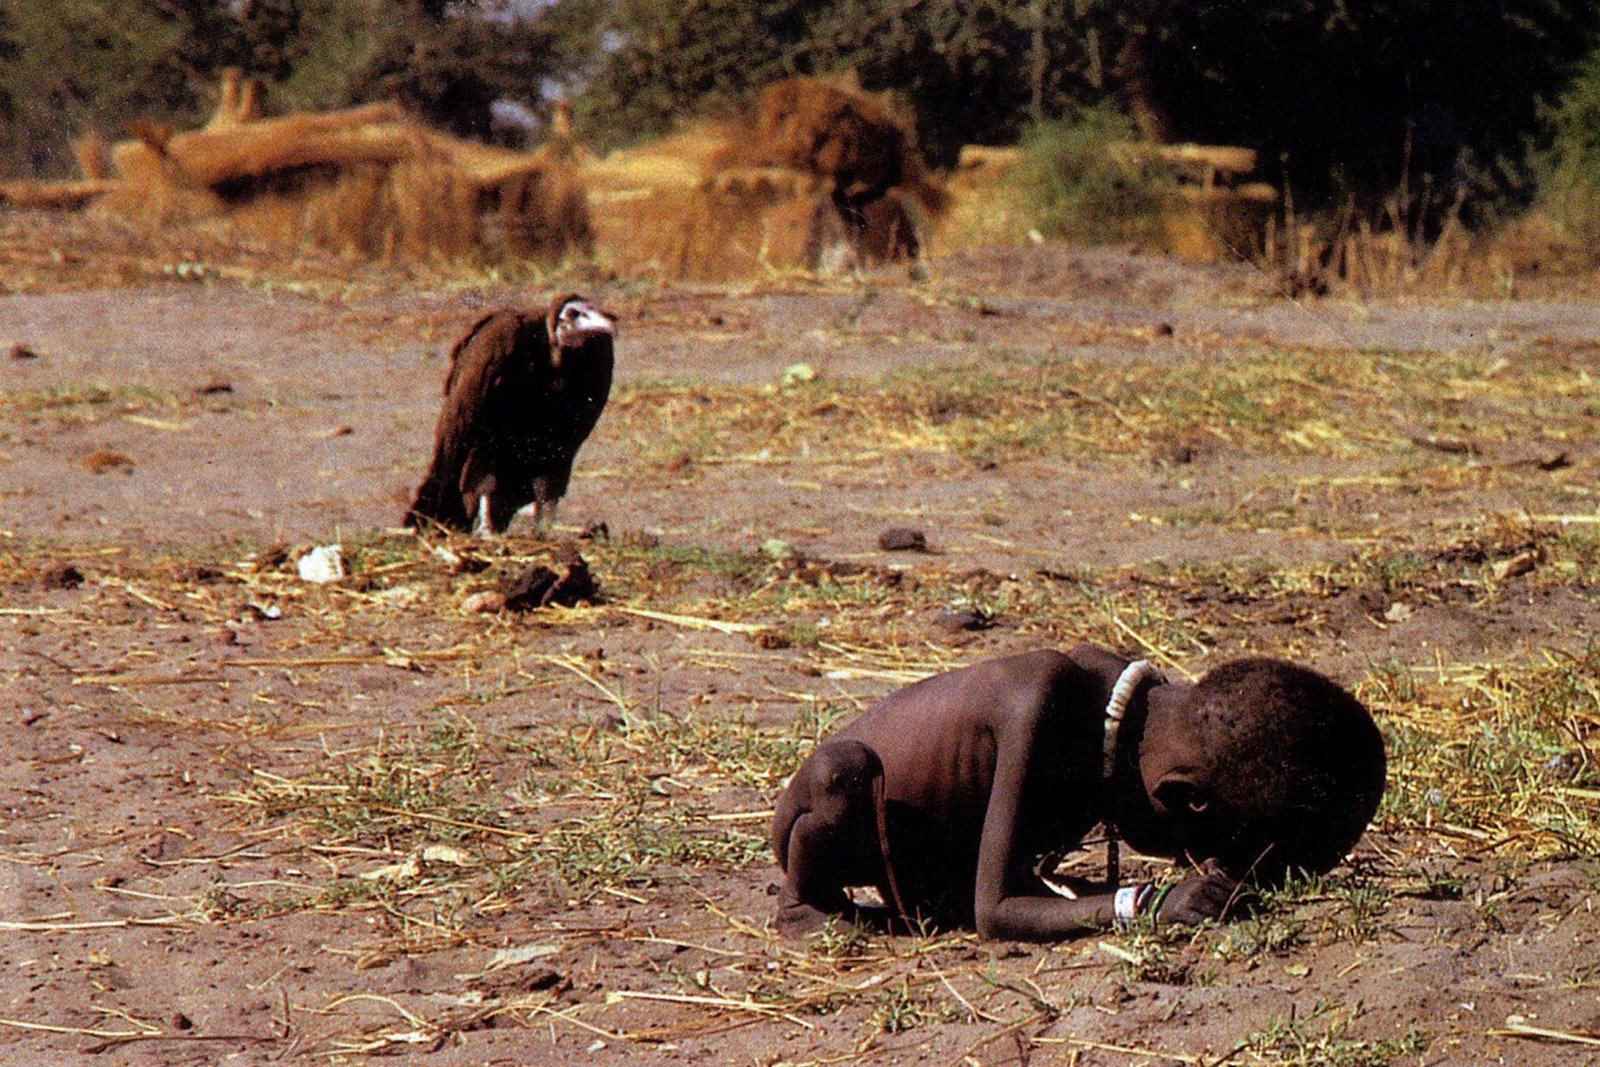 UNILAD kevin carter vulture2 Ten Powerful Images That Shook The World